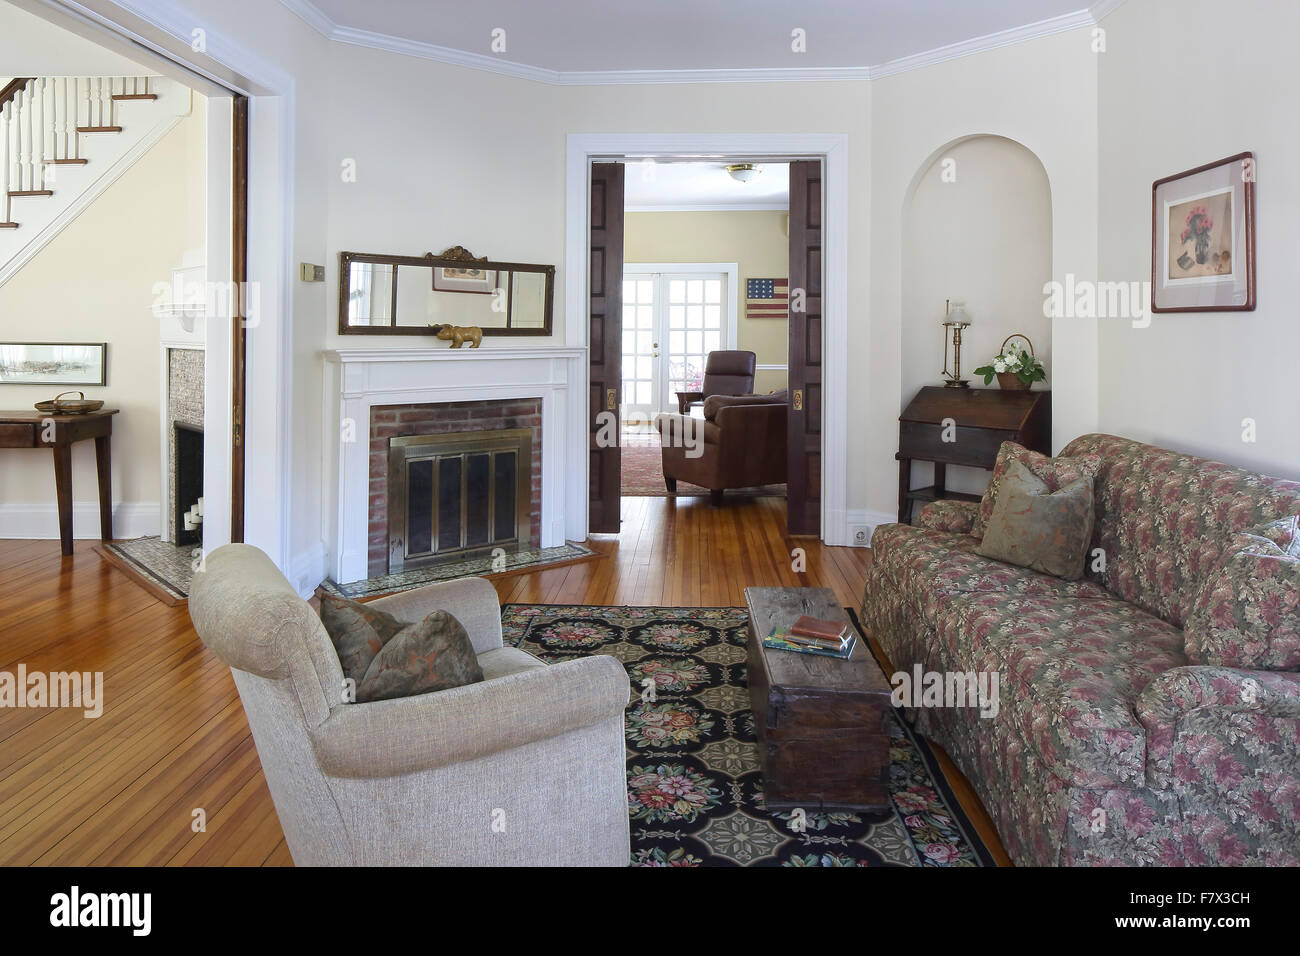 Main Reception Room Living Parlor At Entrance With View Through To Dining And Family Queen Anne Victorian Hou